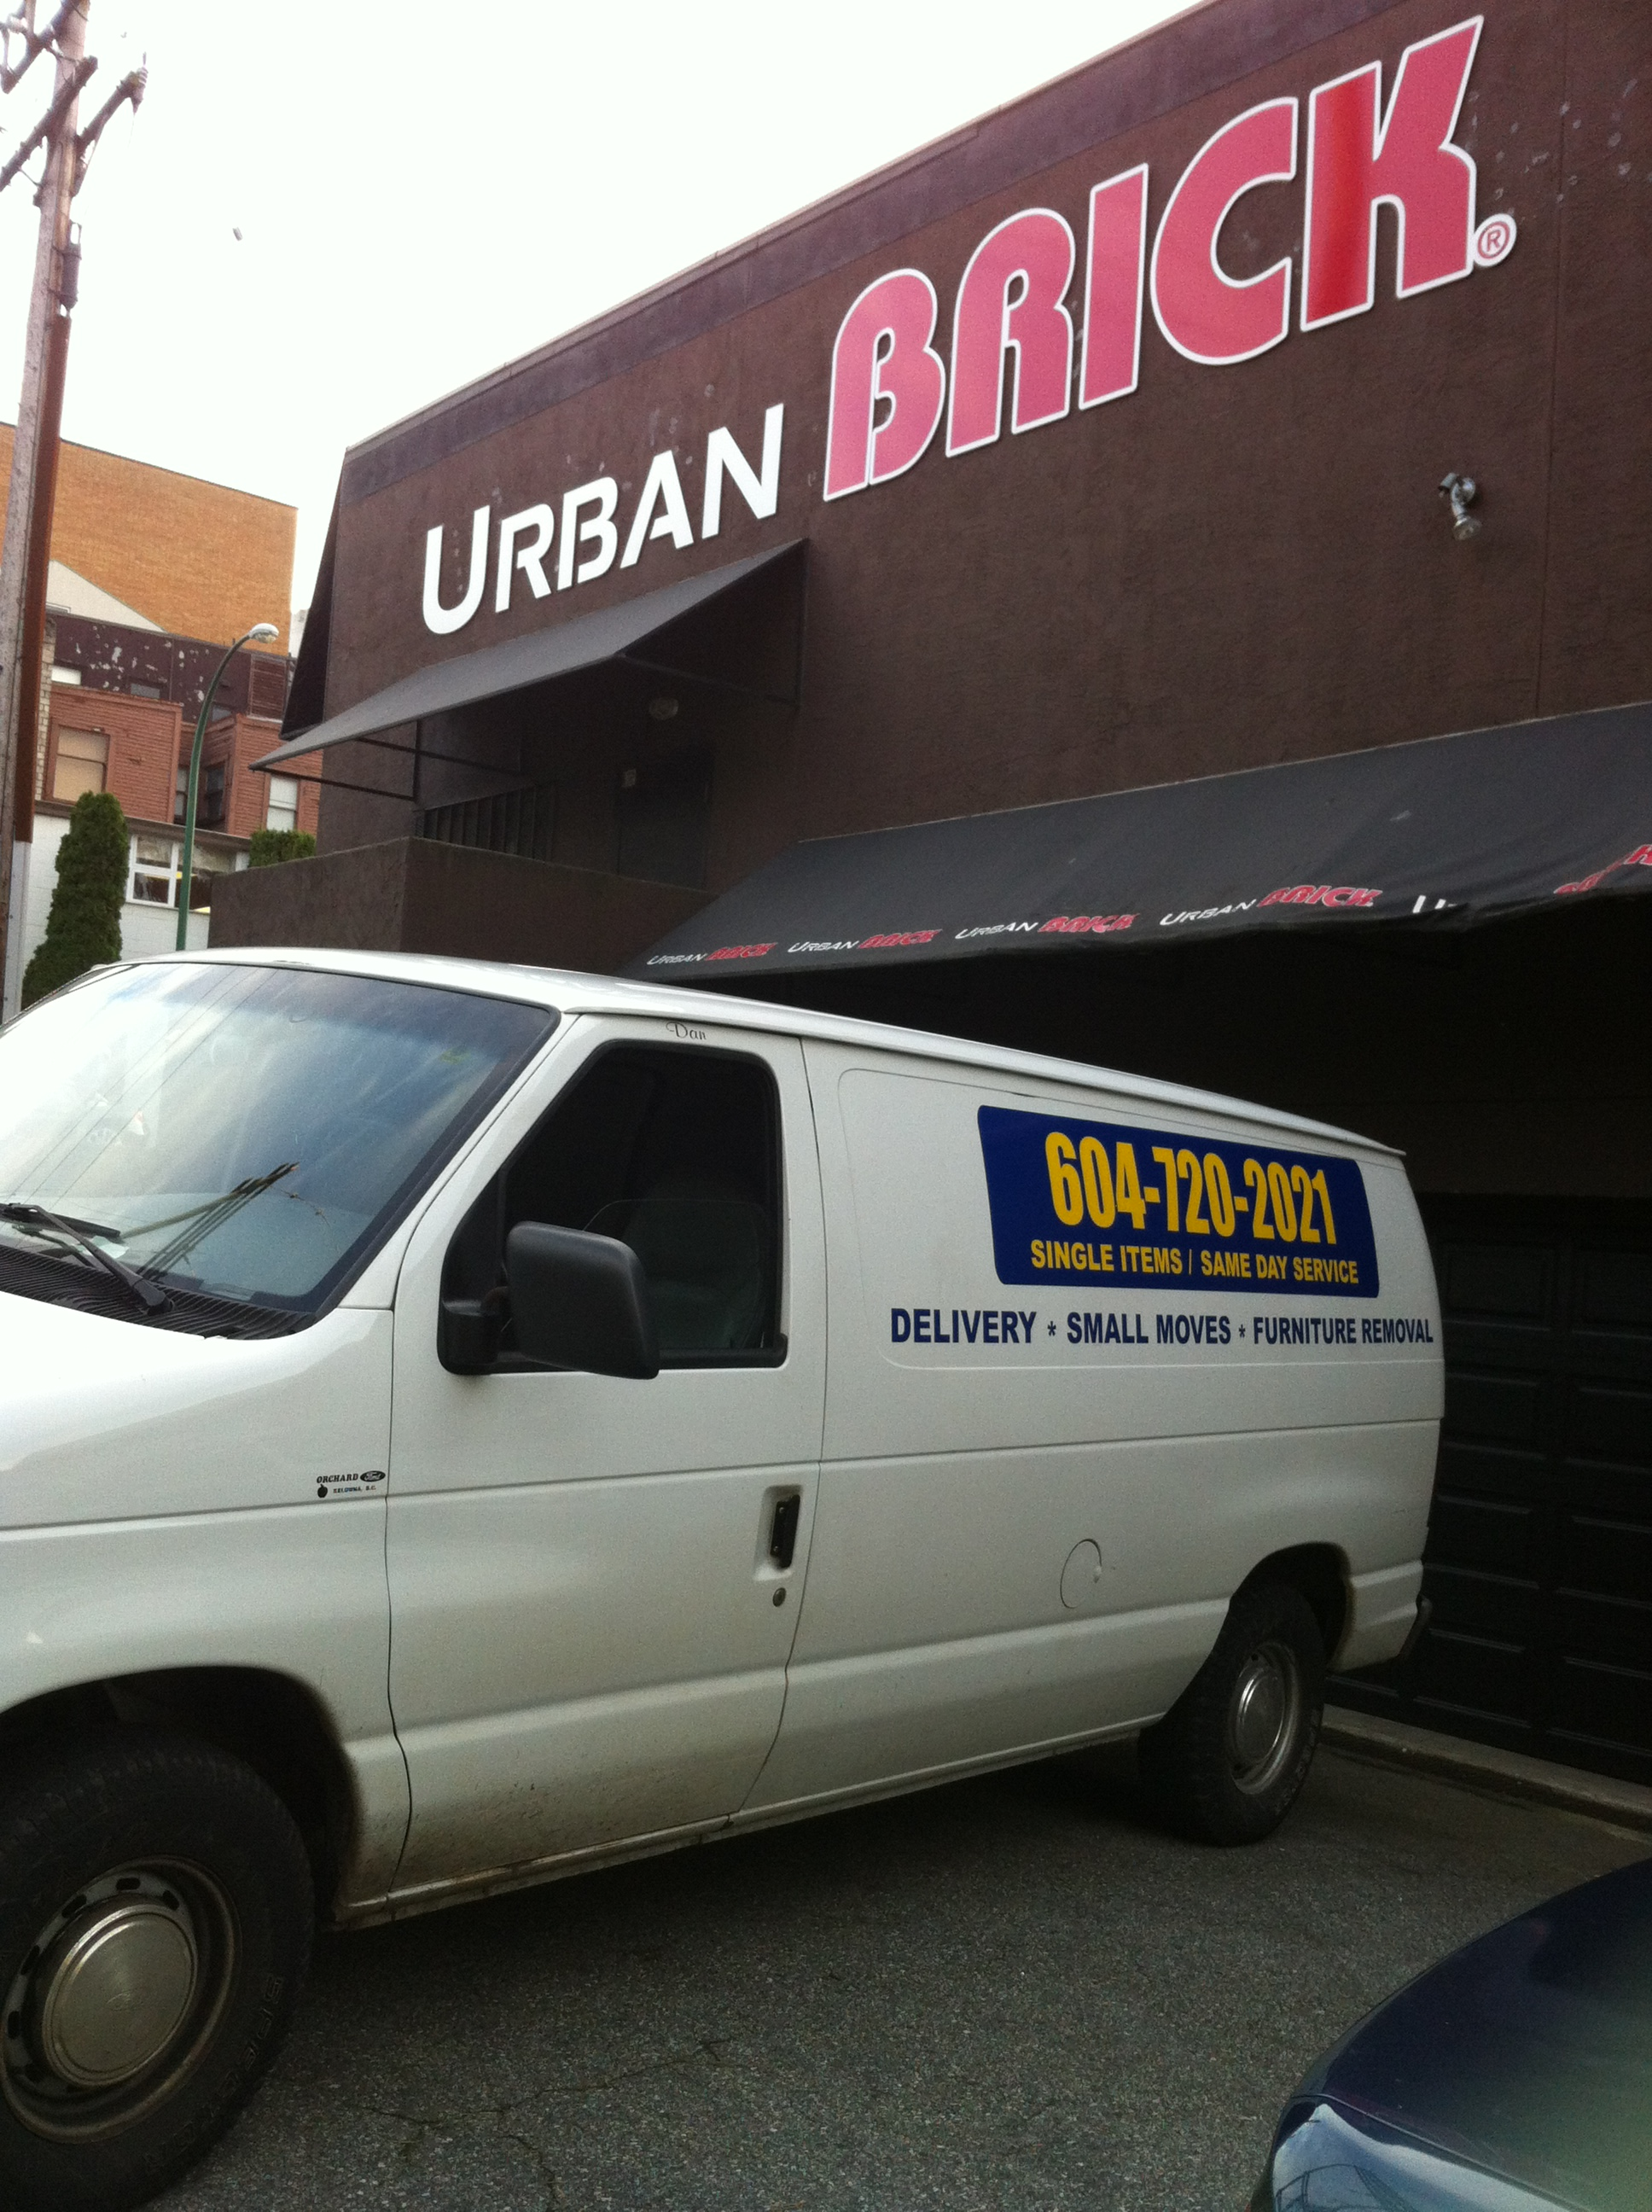 Ikea Richmond Delivery The Urban Brick Delivery In Vancouver Sam 39s Small Moves